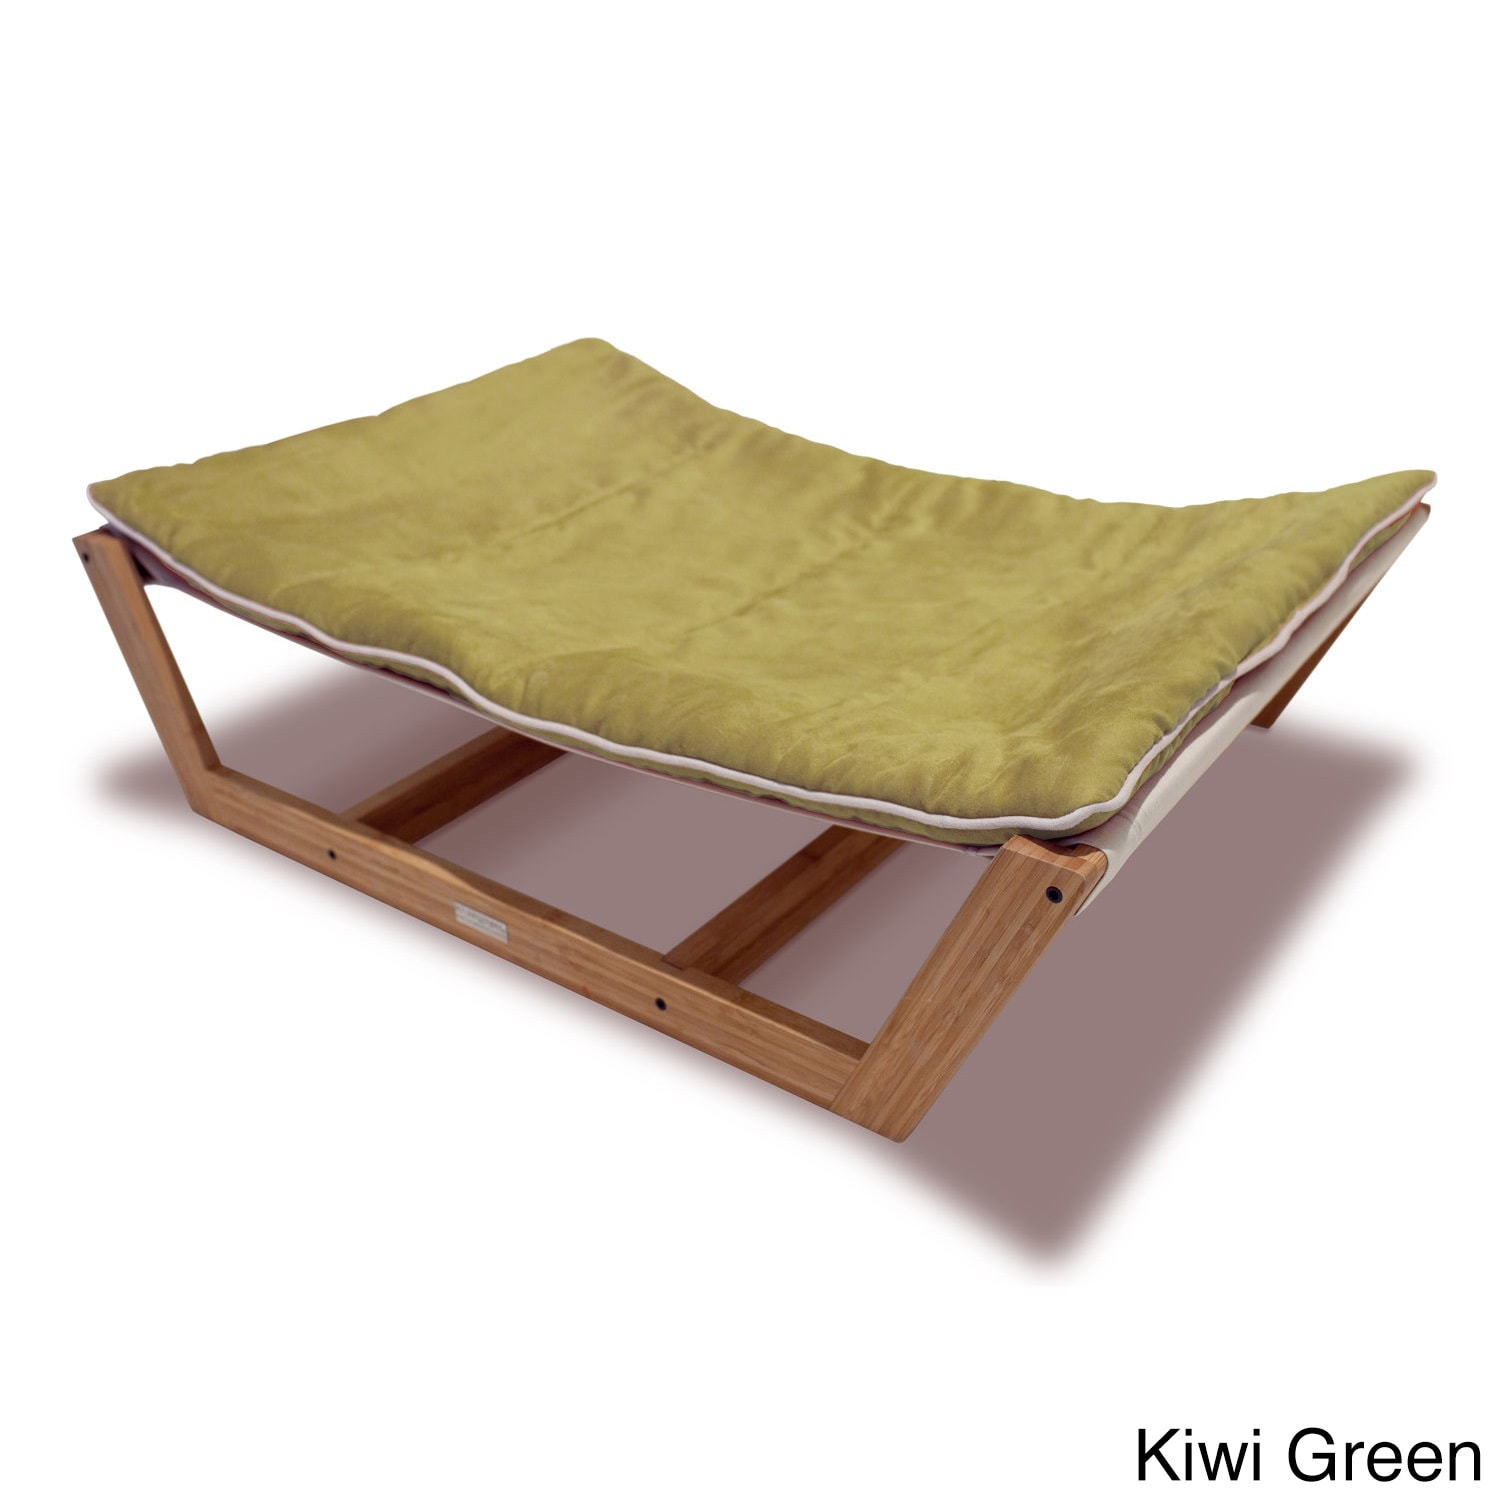 bamboo nautical solid colored wood suede hammock dog and cat bed   free shipping today   overstock     19142561 bamboo nautical solid colored wood suede hammock dog and cat bed      rh   overstock